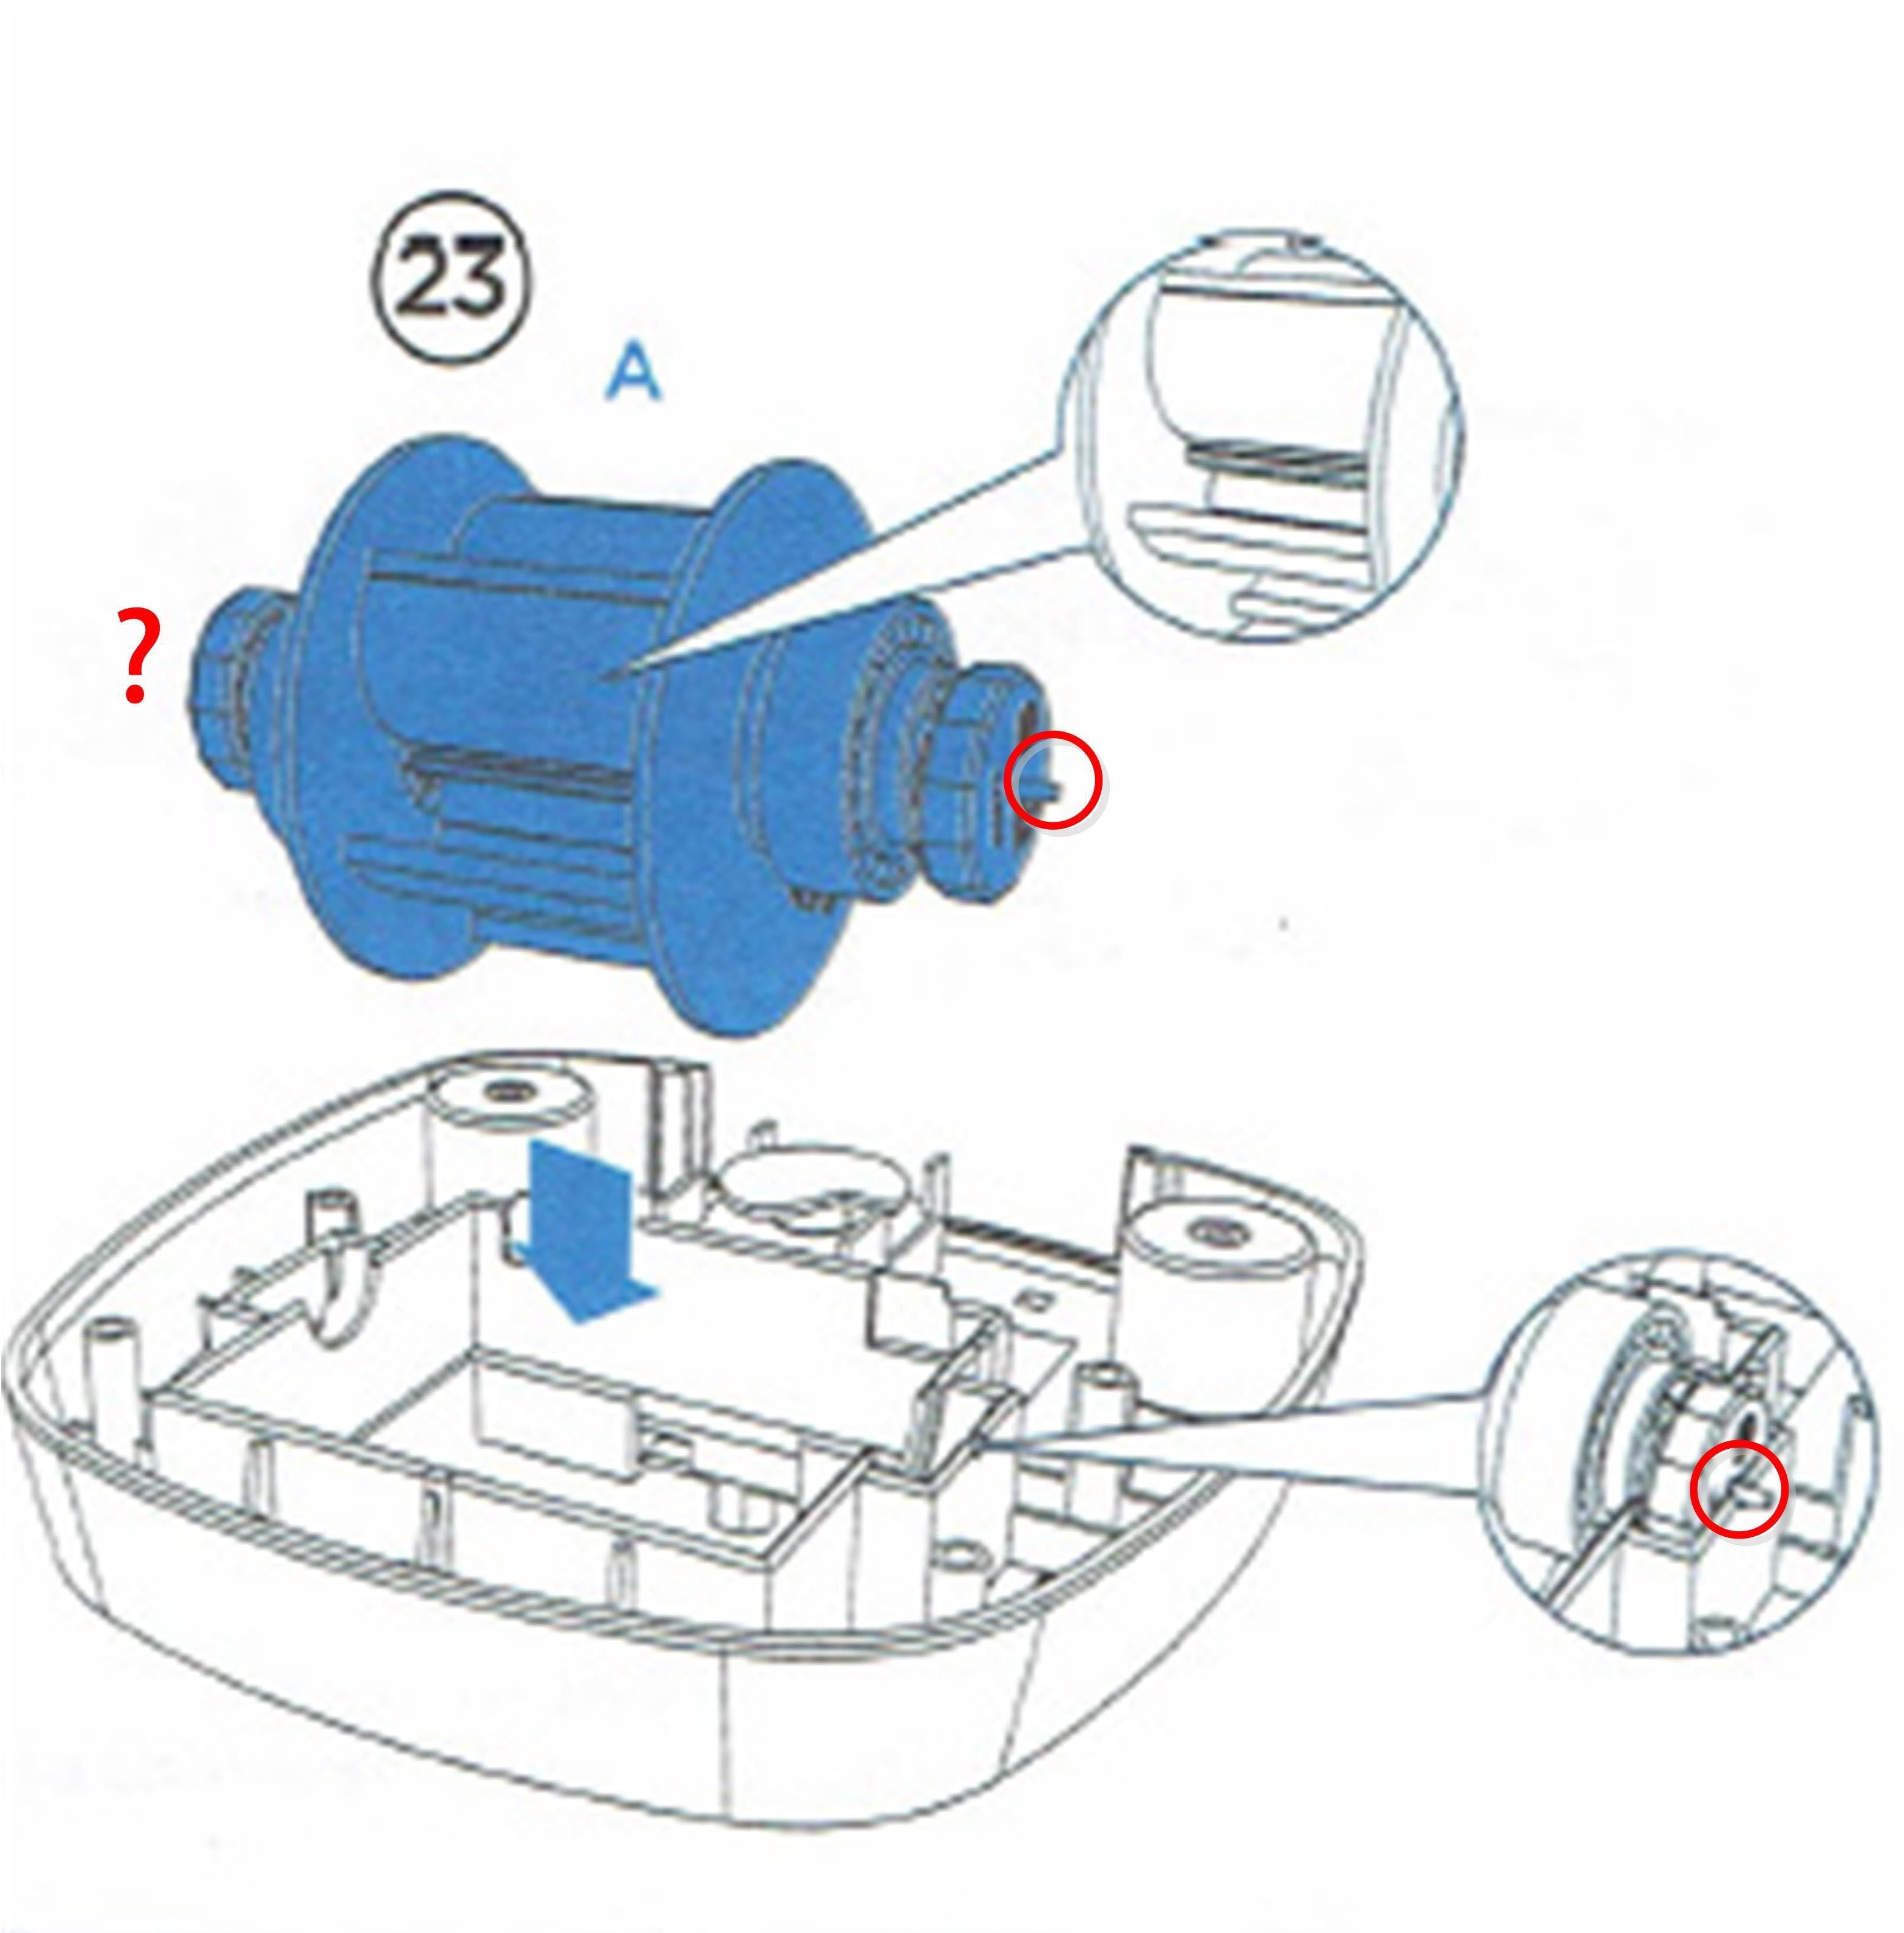 M Chrysler Engine Wiring Diagram on 4dr sedan, driver side window, front bumper cover, door handle, gas smell, looking under hood, rear suspension,